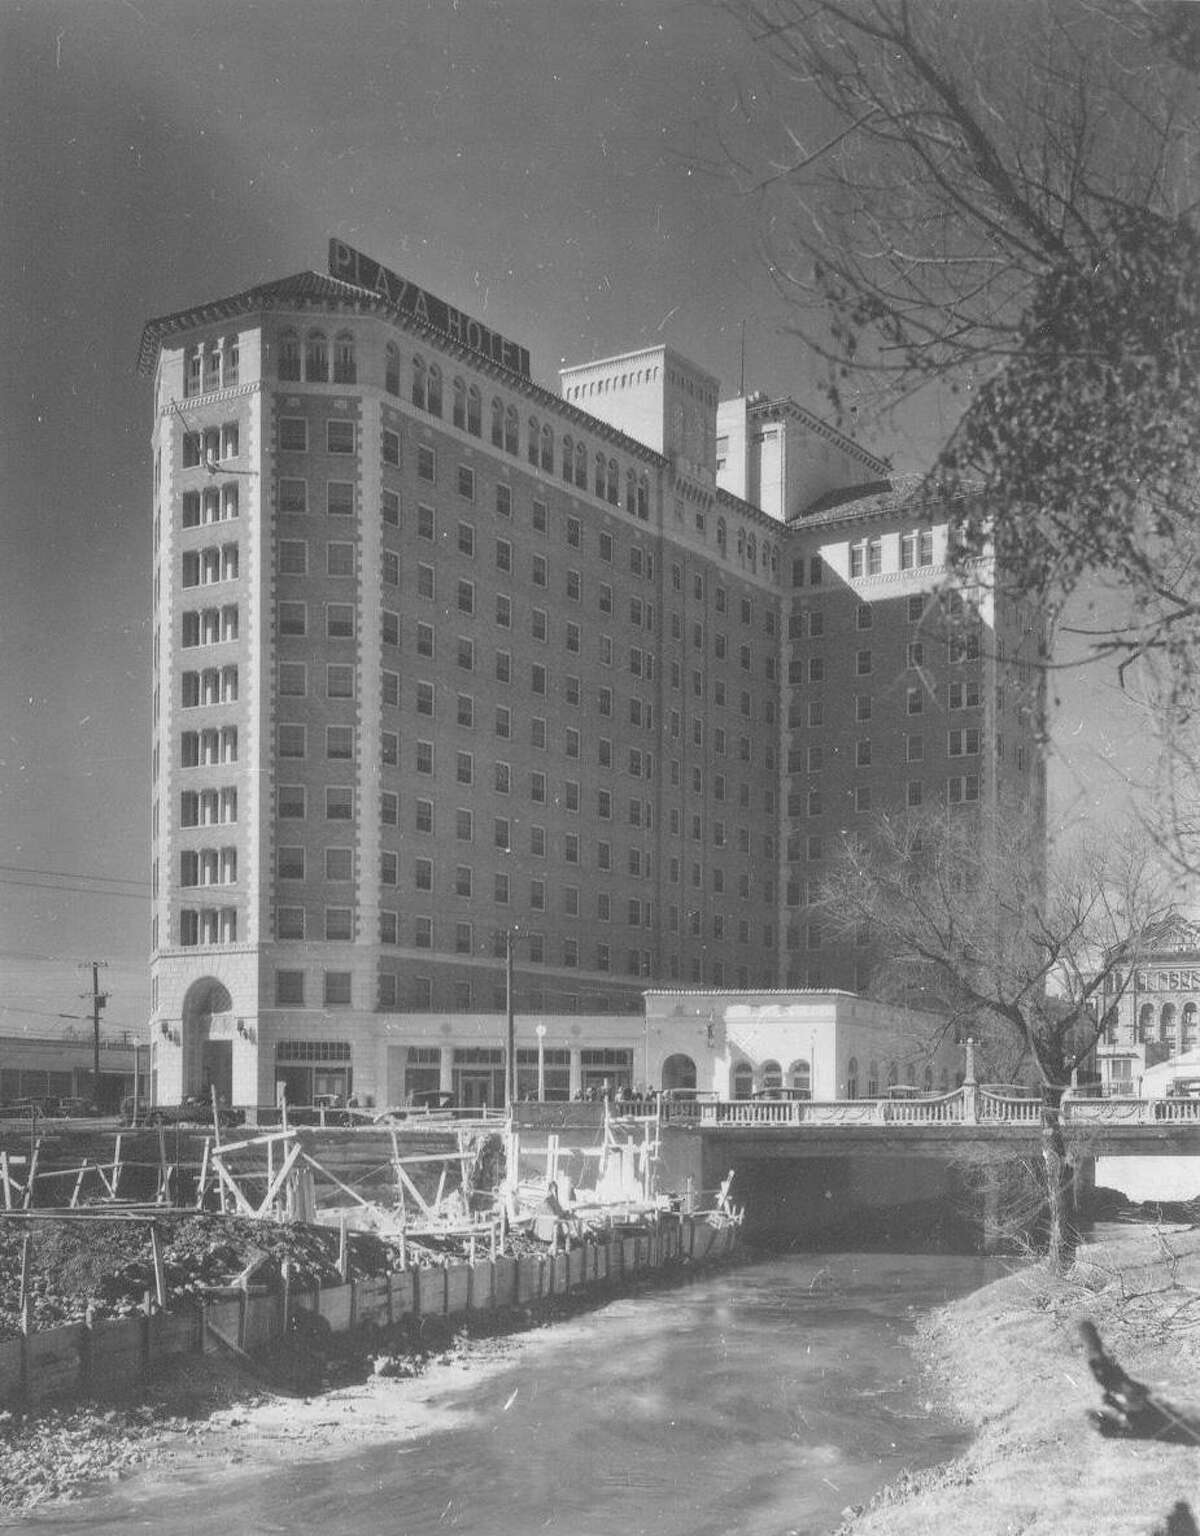 An undated view of the original Plaza Hotel in San Antonio, built in the late 1920s. It's now the Granada Homes apartments.